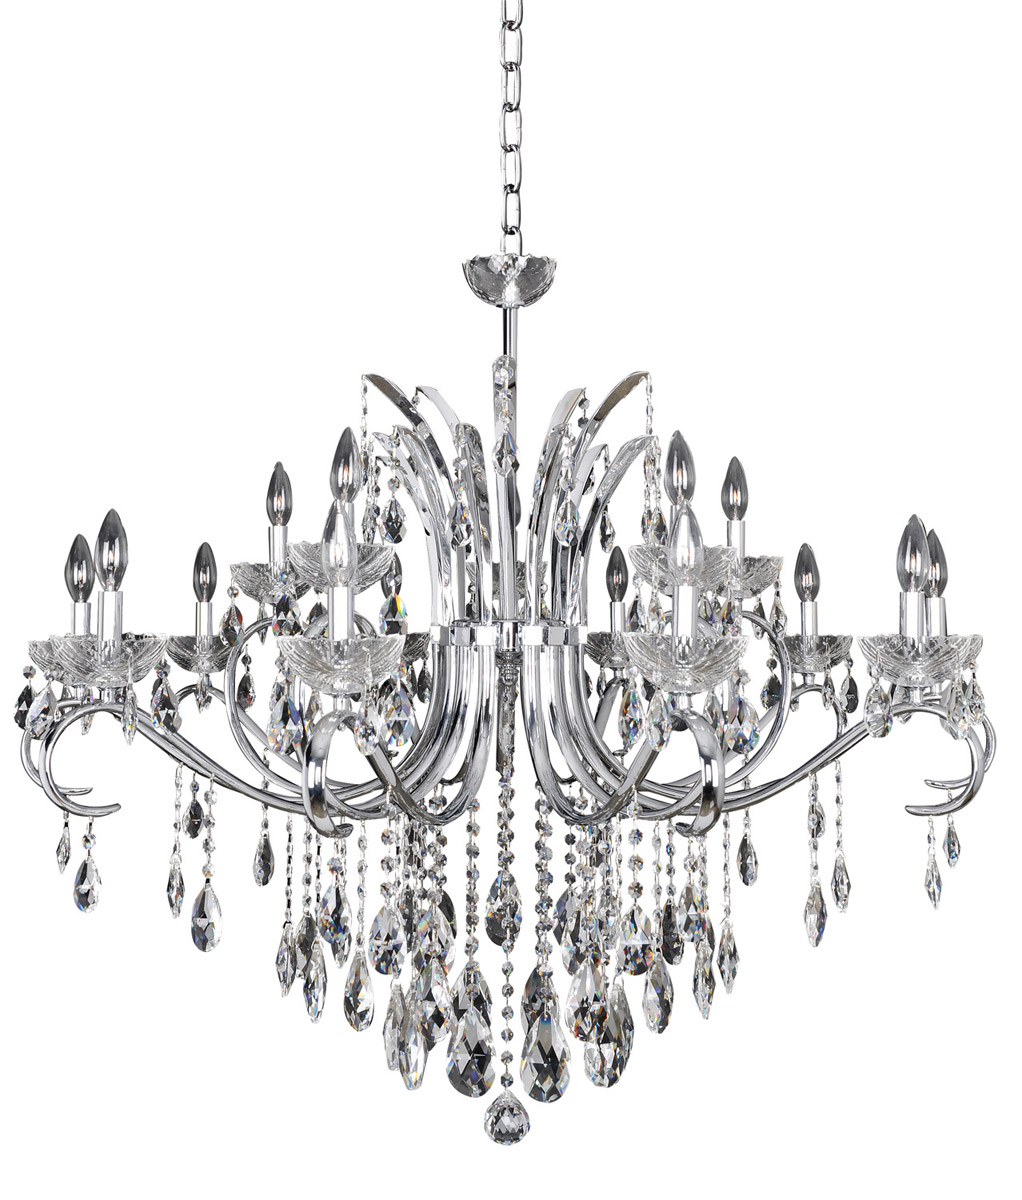 Allegri Catalani 15-Light Chandelier in Chrome w/ Firenze Crystal